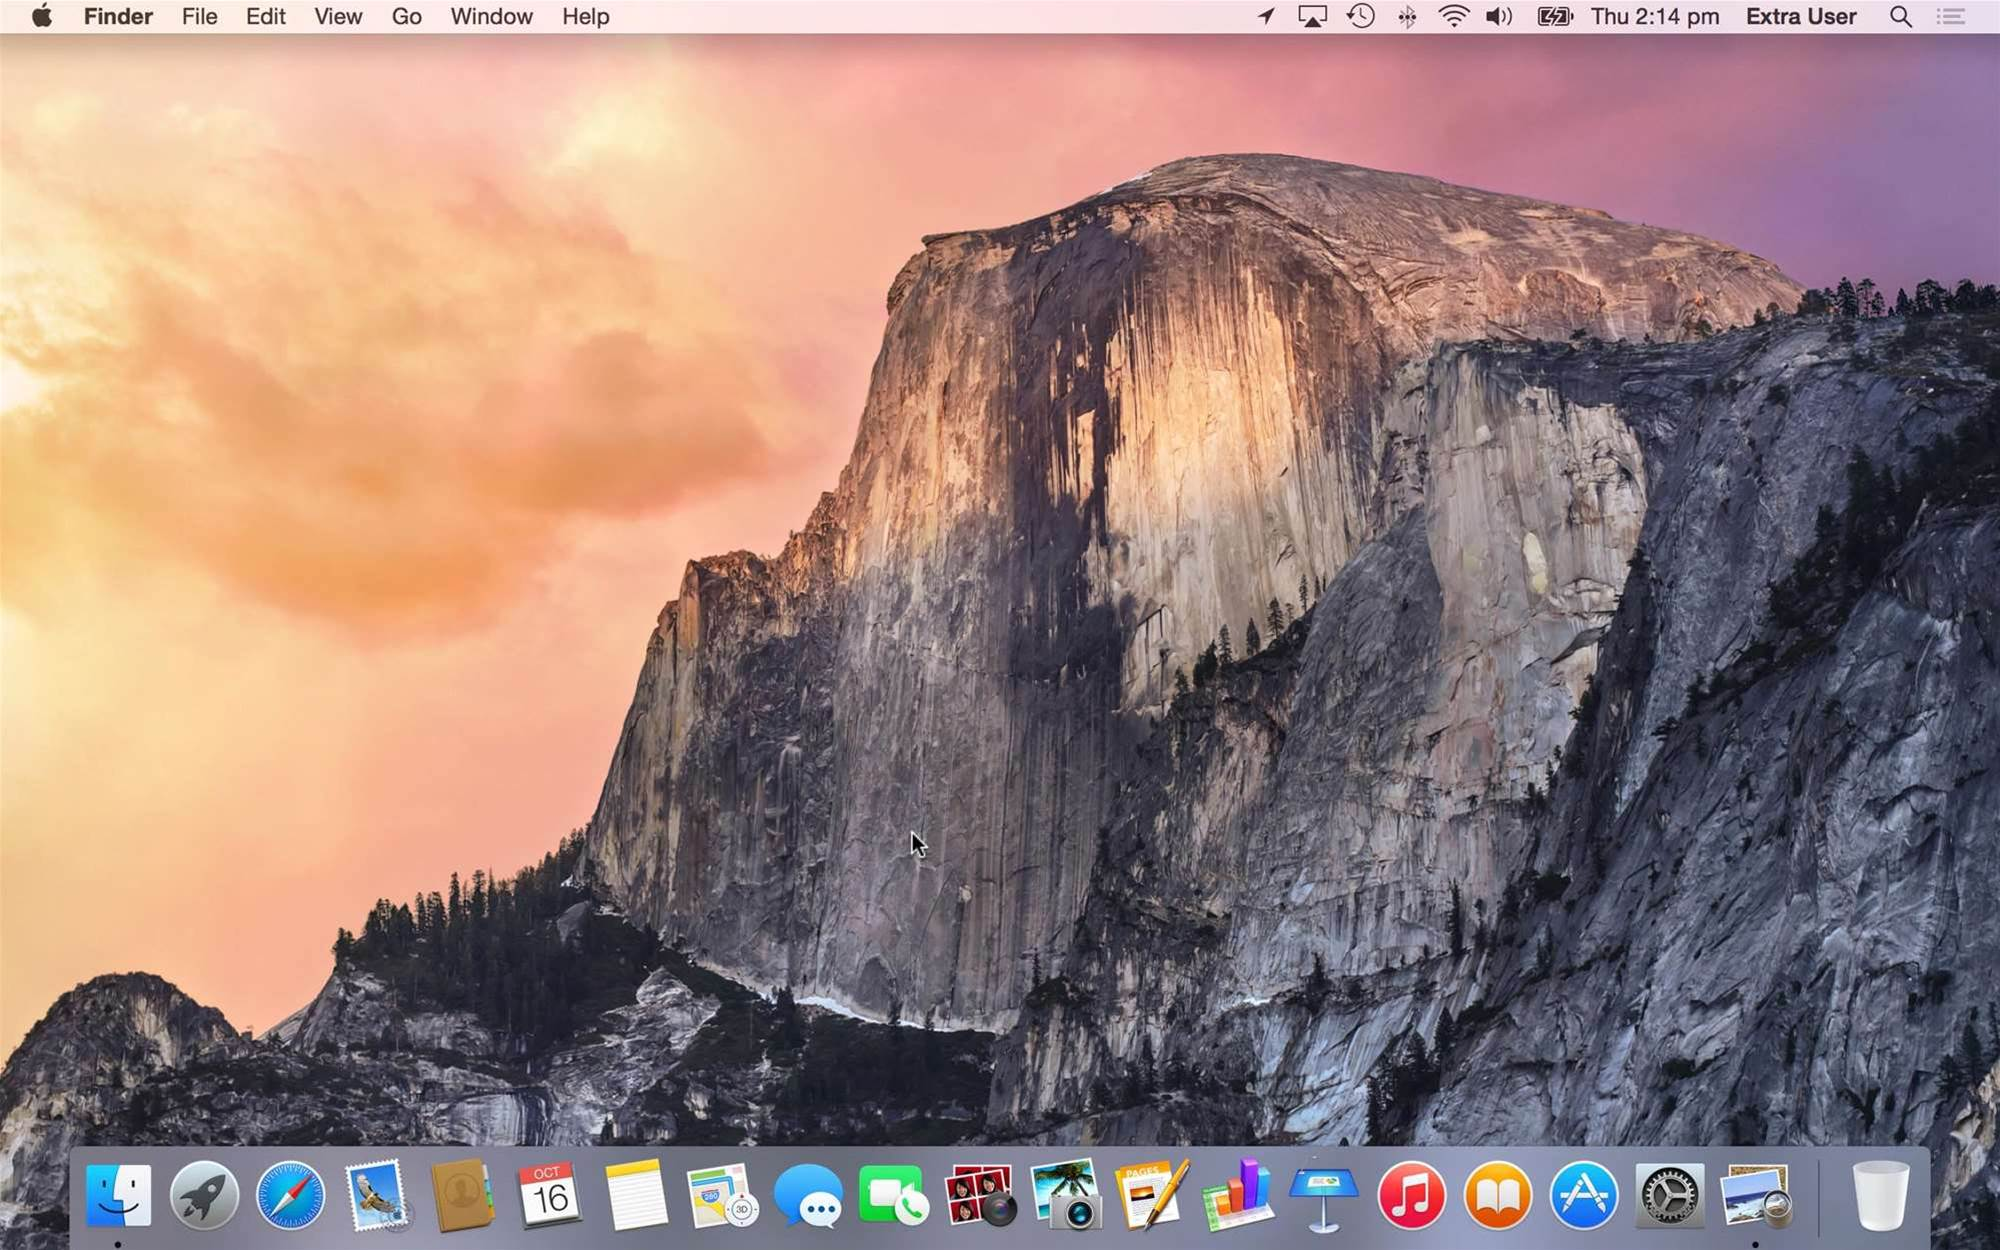 Reviewed: Mac OS X Yosemite